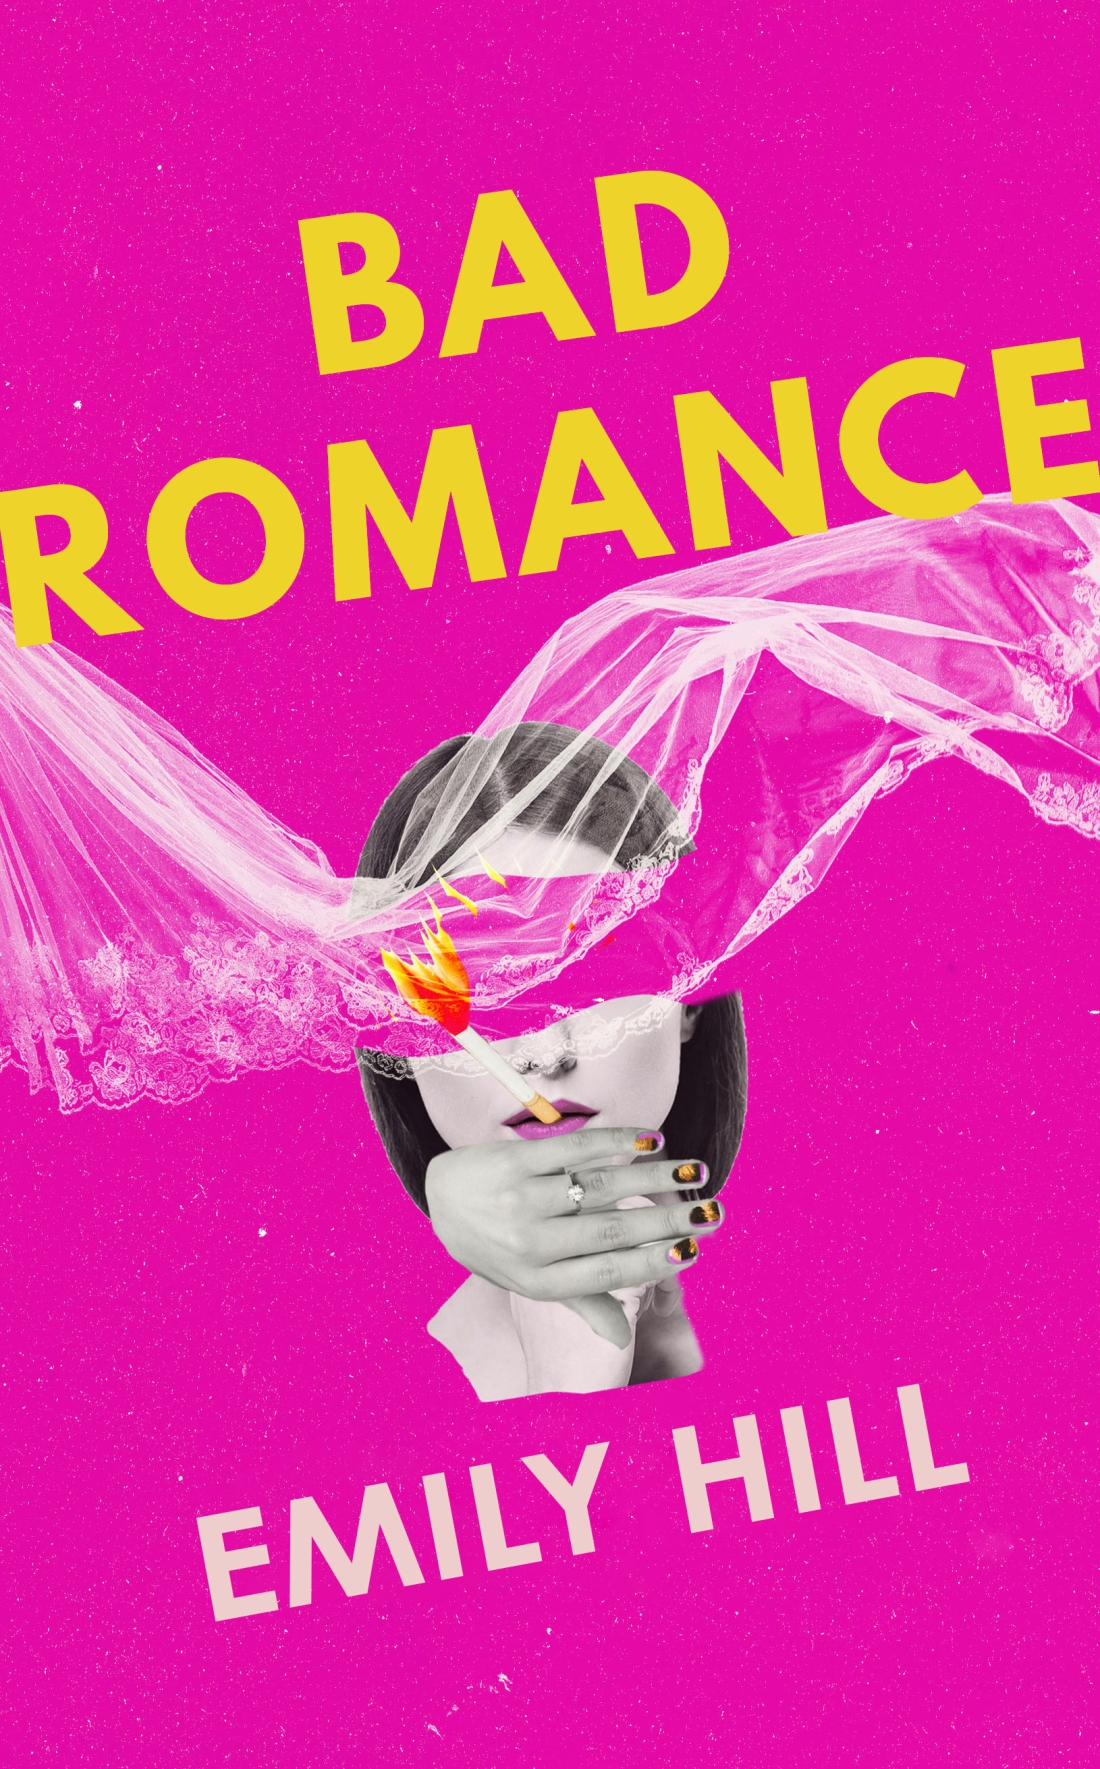 BAD ROMANCE COVER 1 recoloured